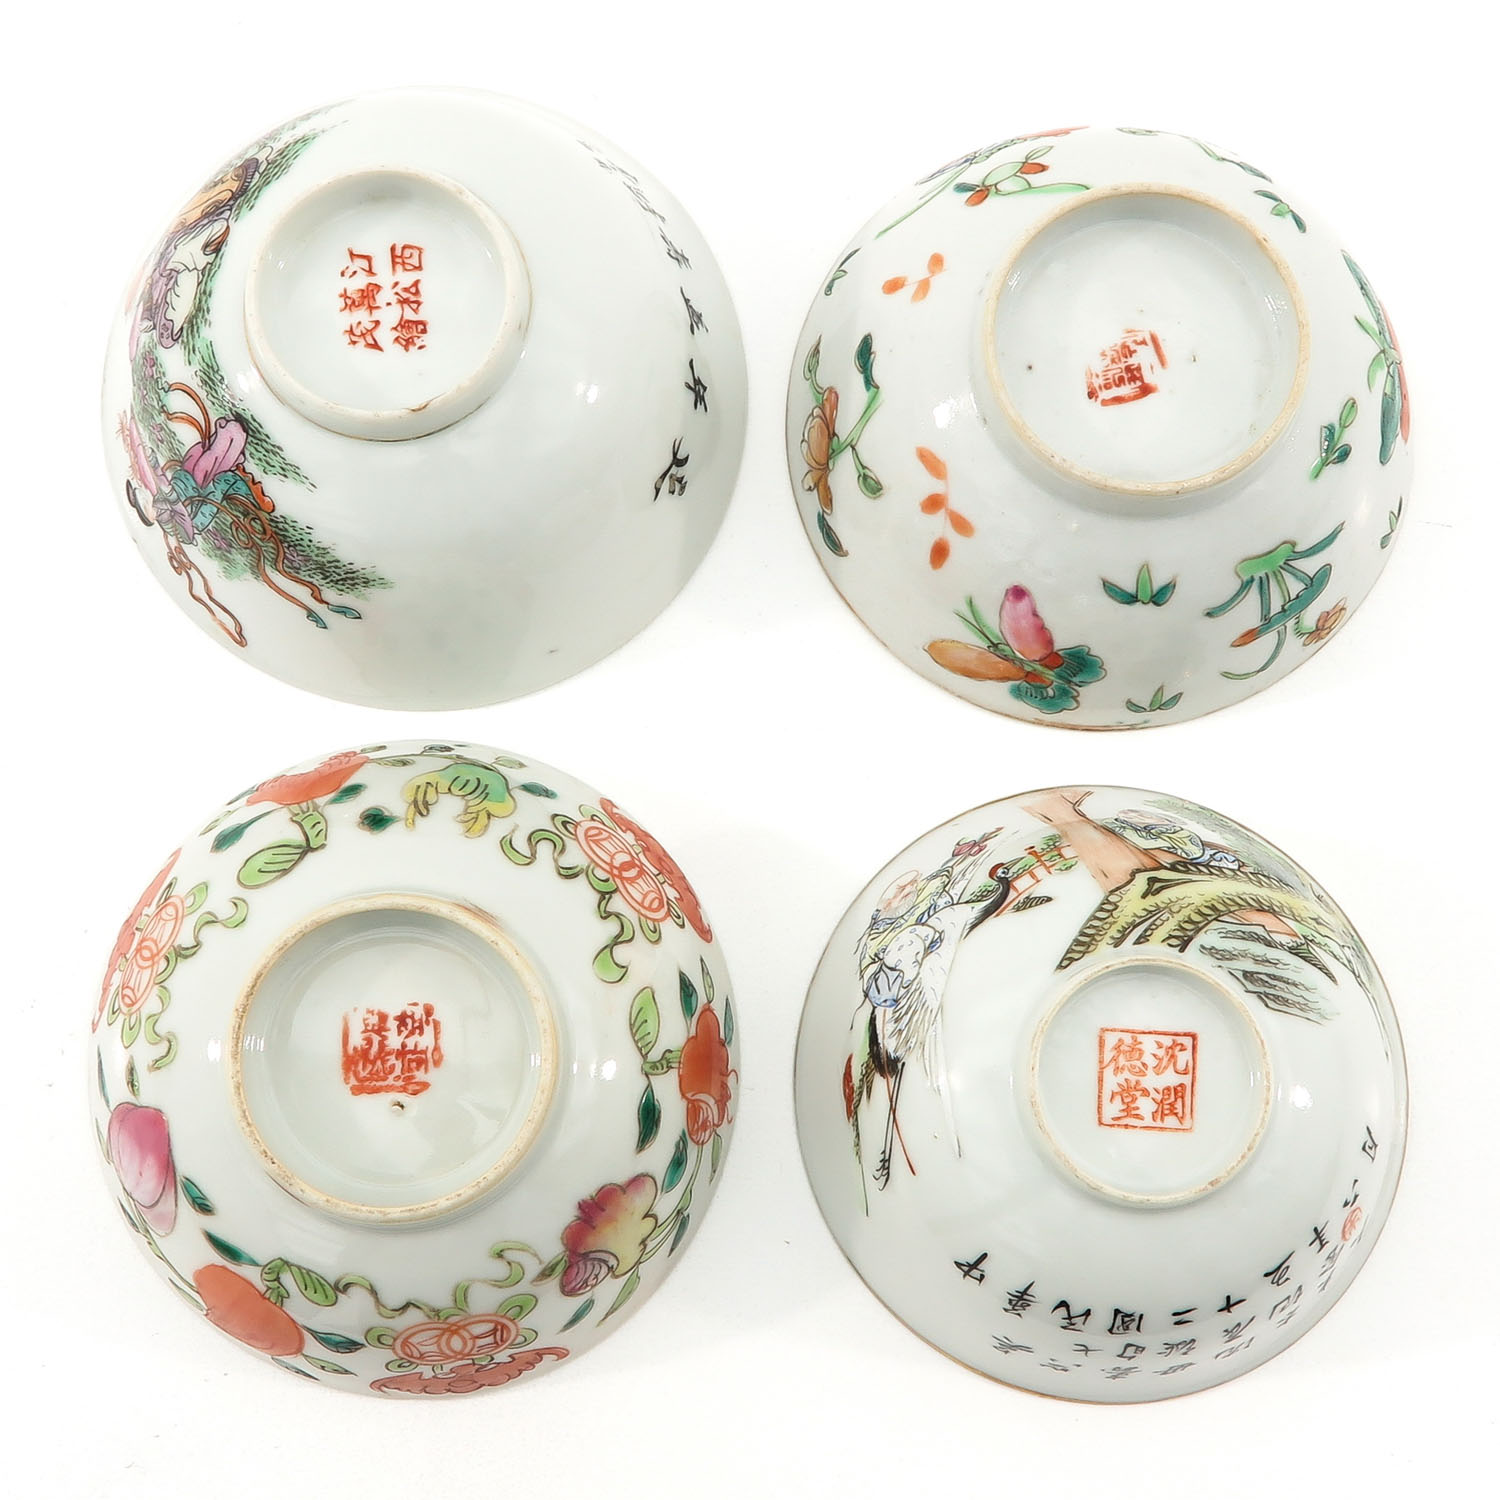 A Collection of 4 Polychrome Bowls - Image 6 of 10